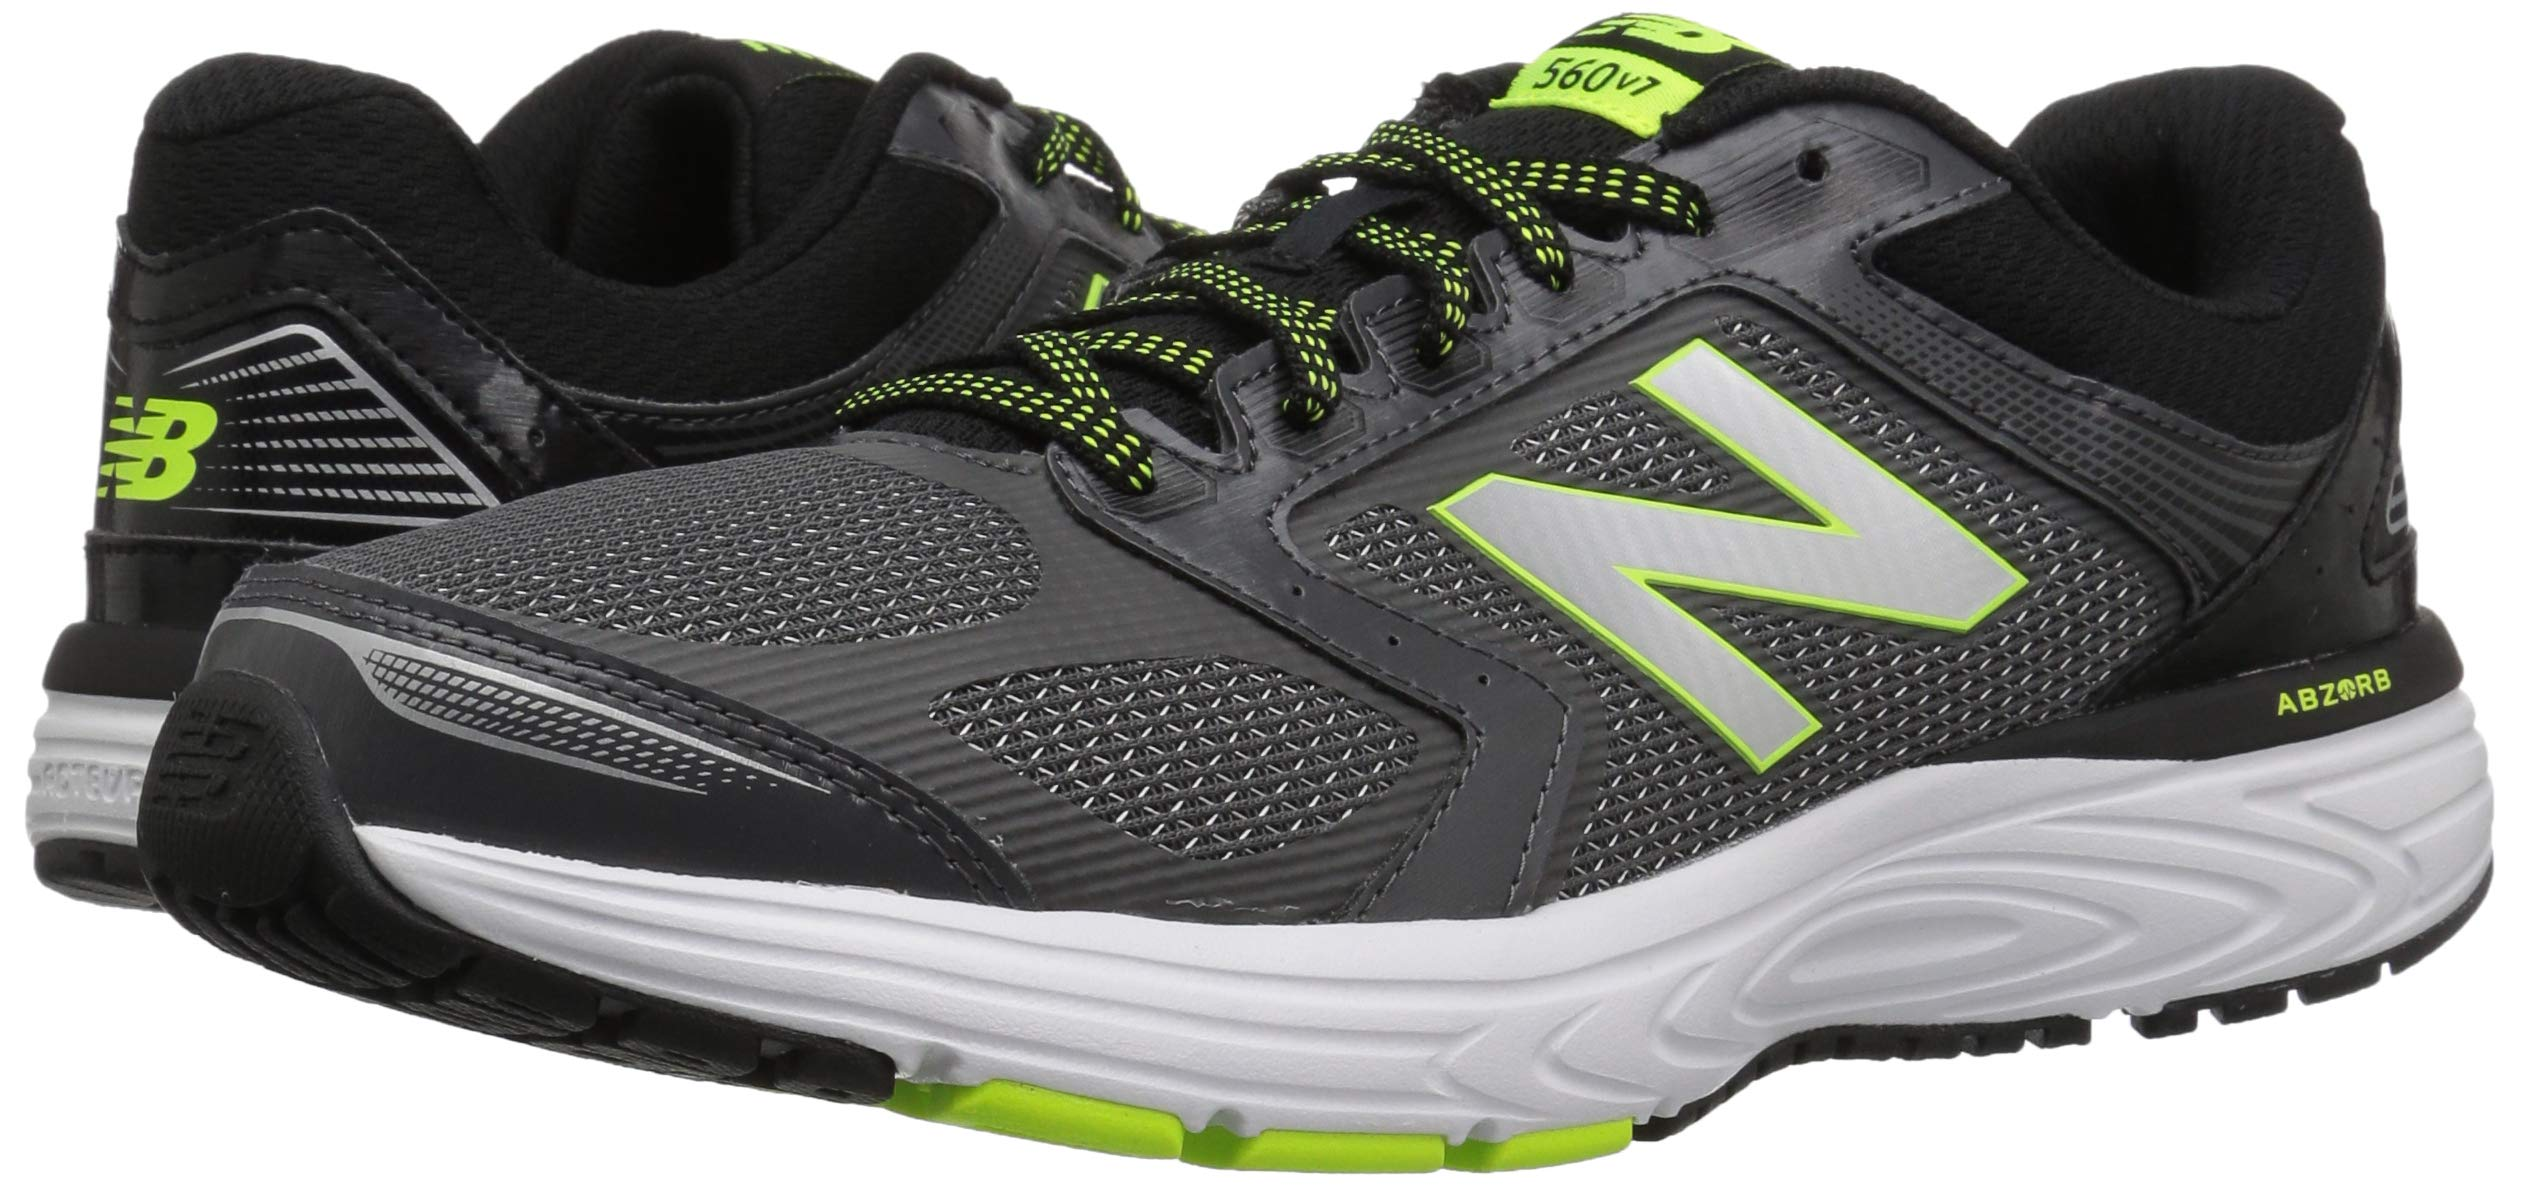 M560cp7 Running Shoes 4E XWide Size